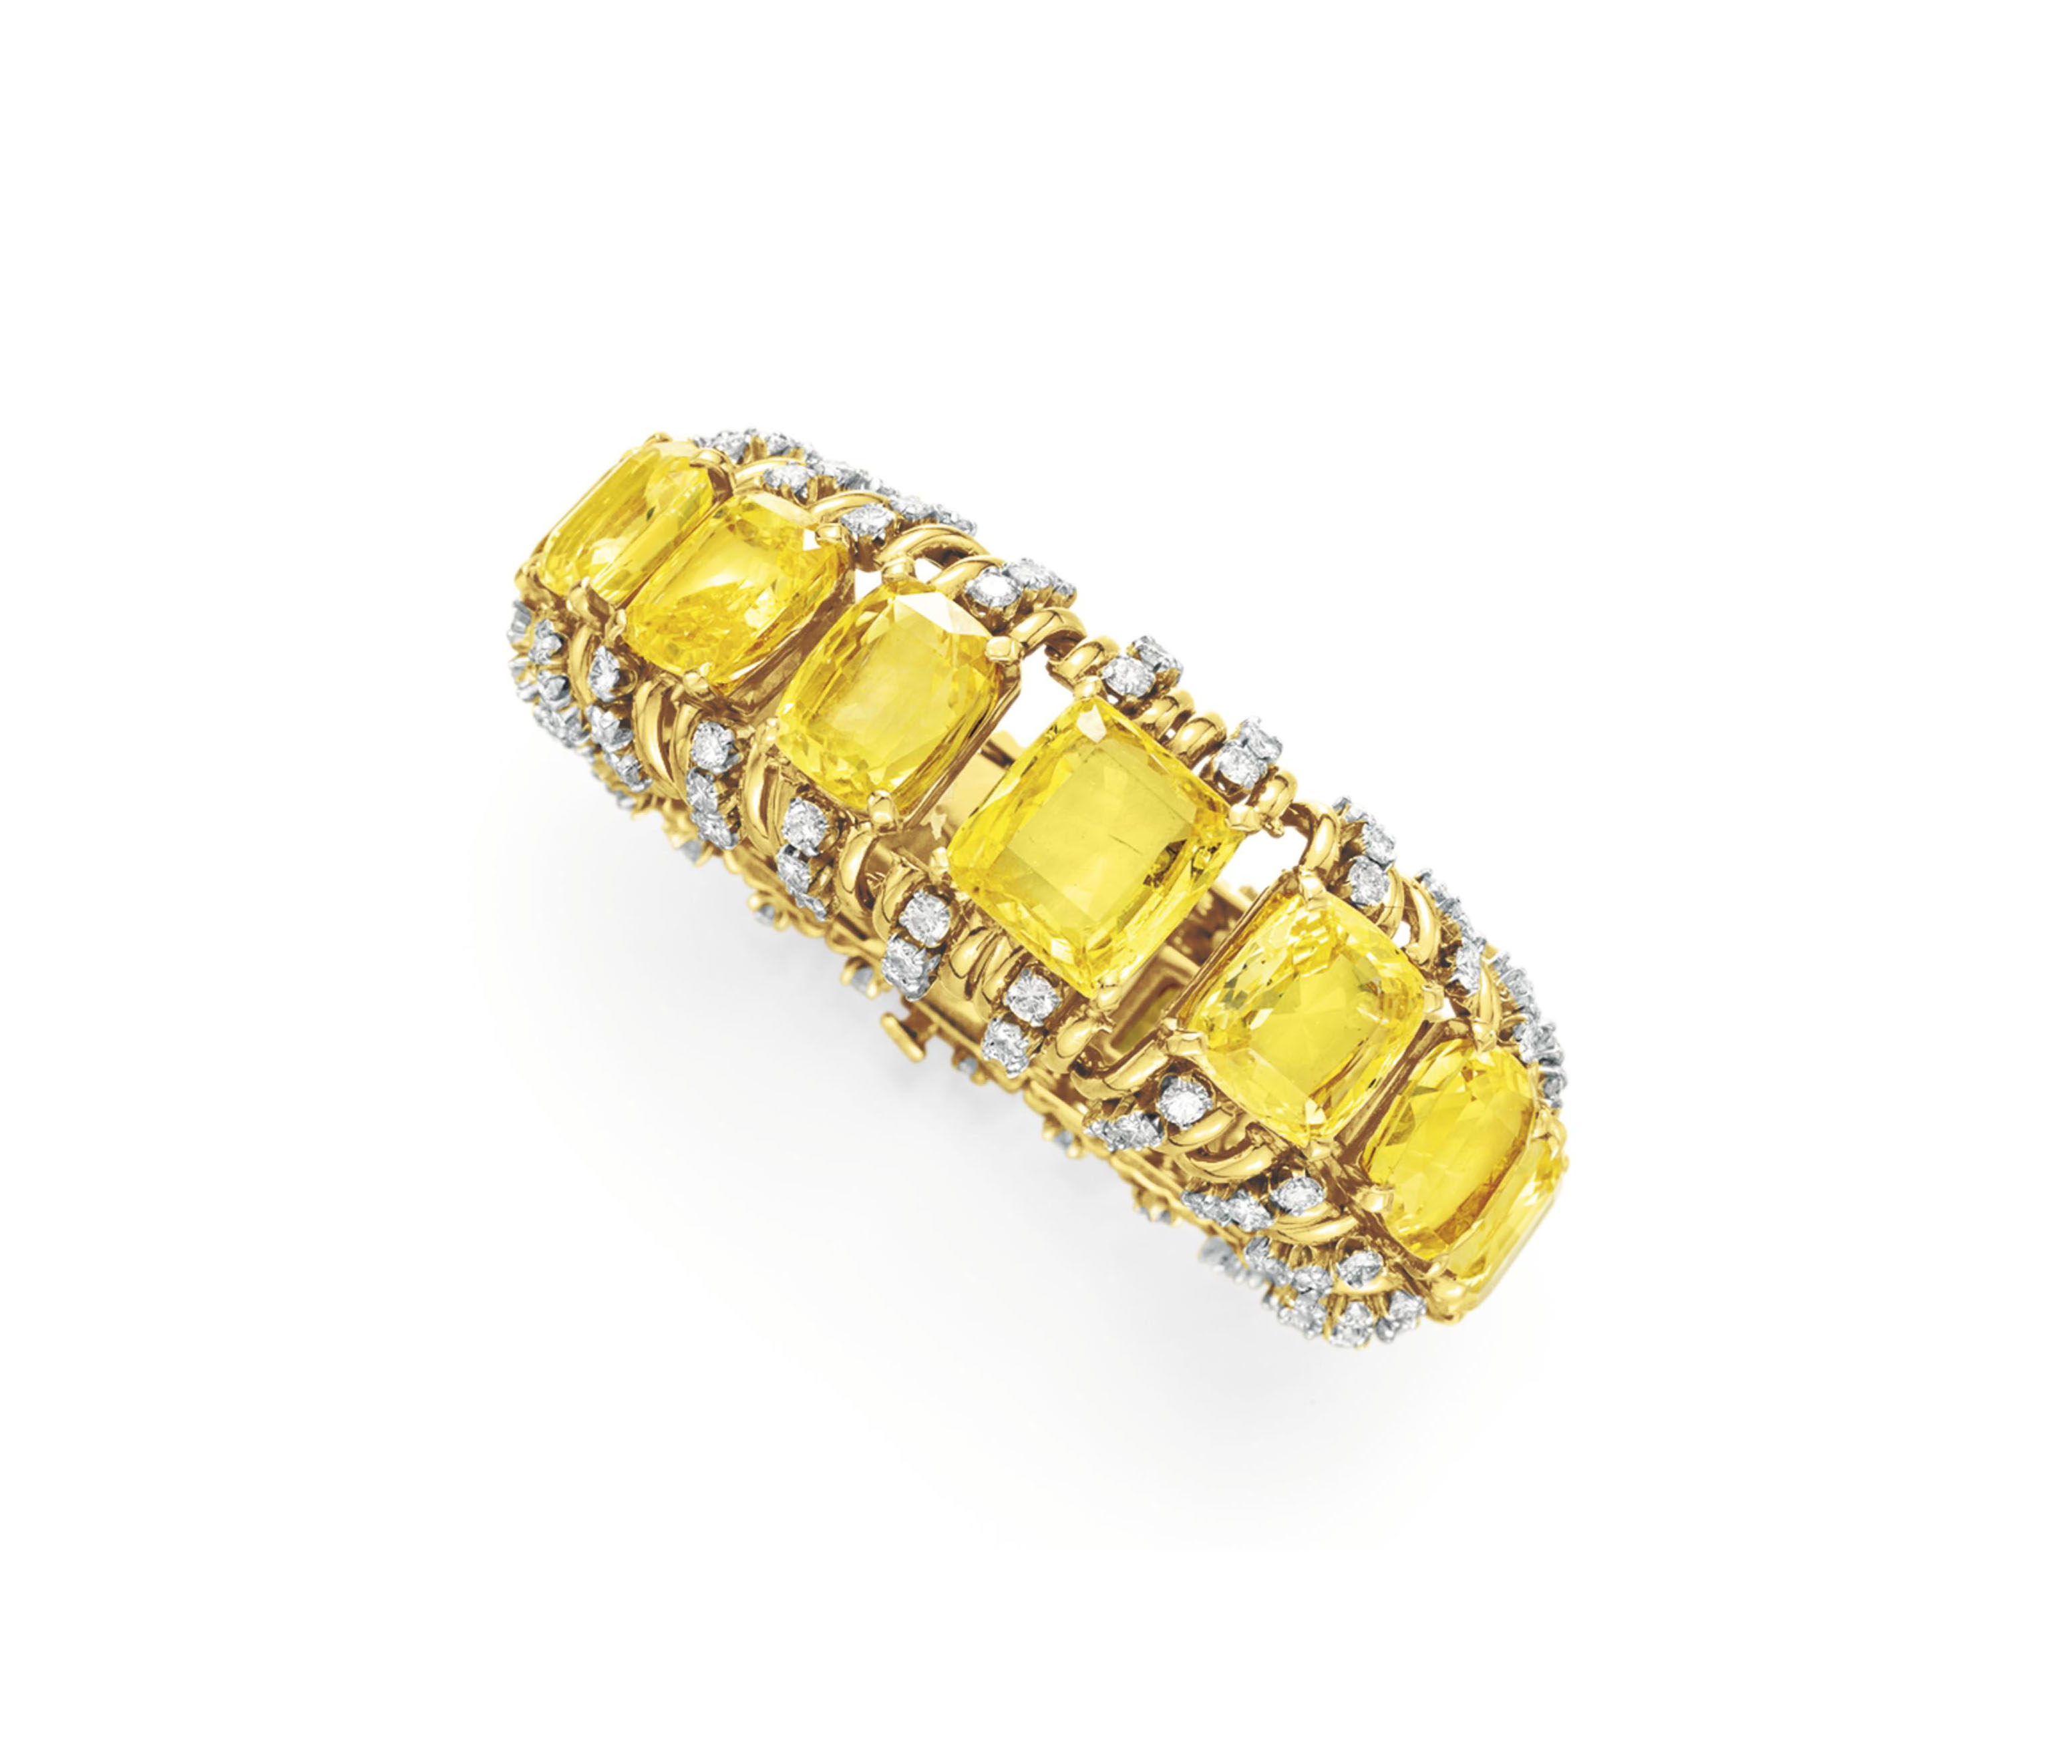 A YELLOW SAPPHIRE AND DIAMOND BRACELET, BY VERDURA